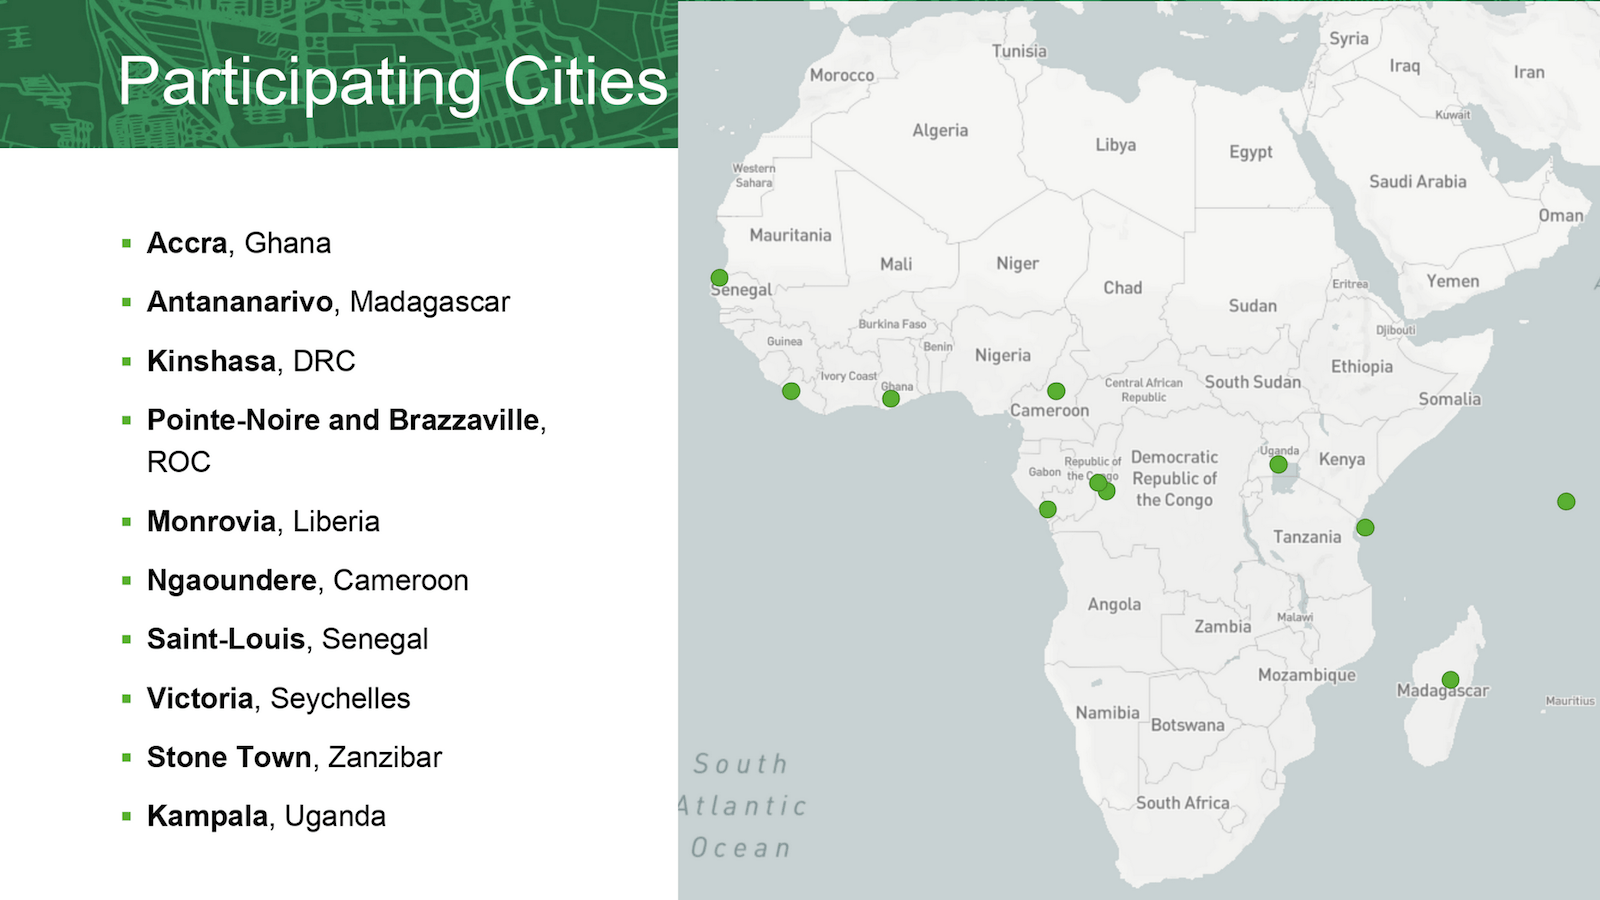 oc-africa-cities.png